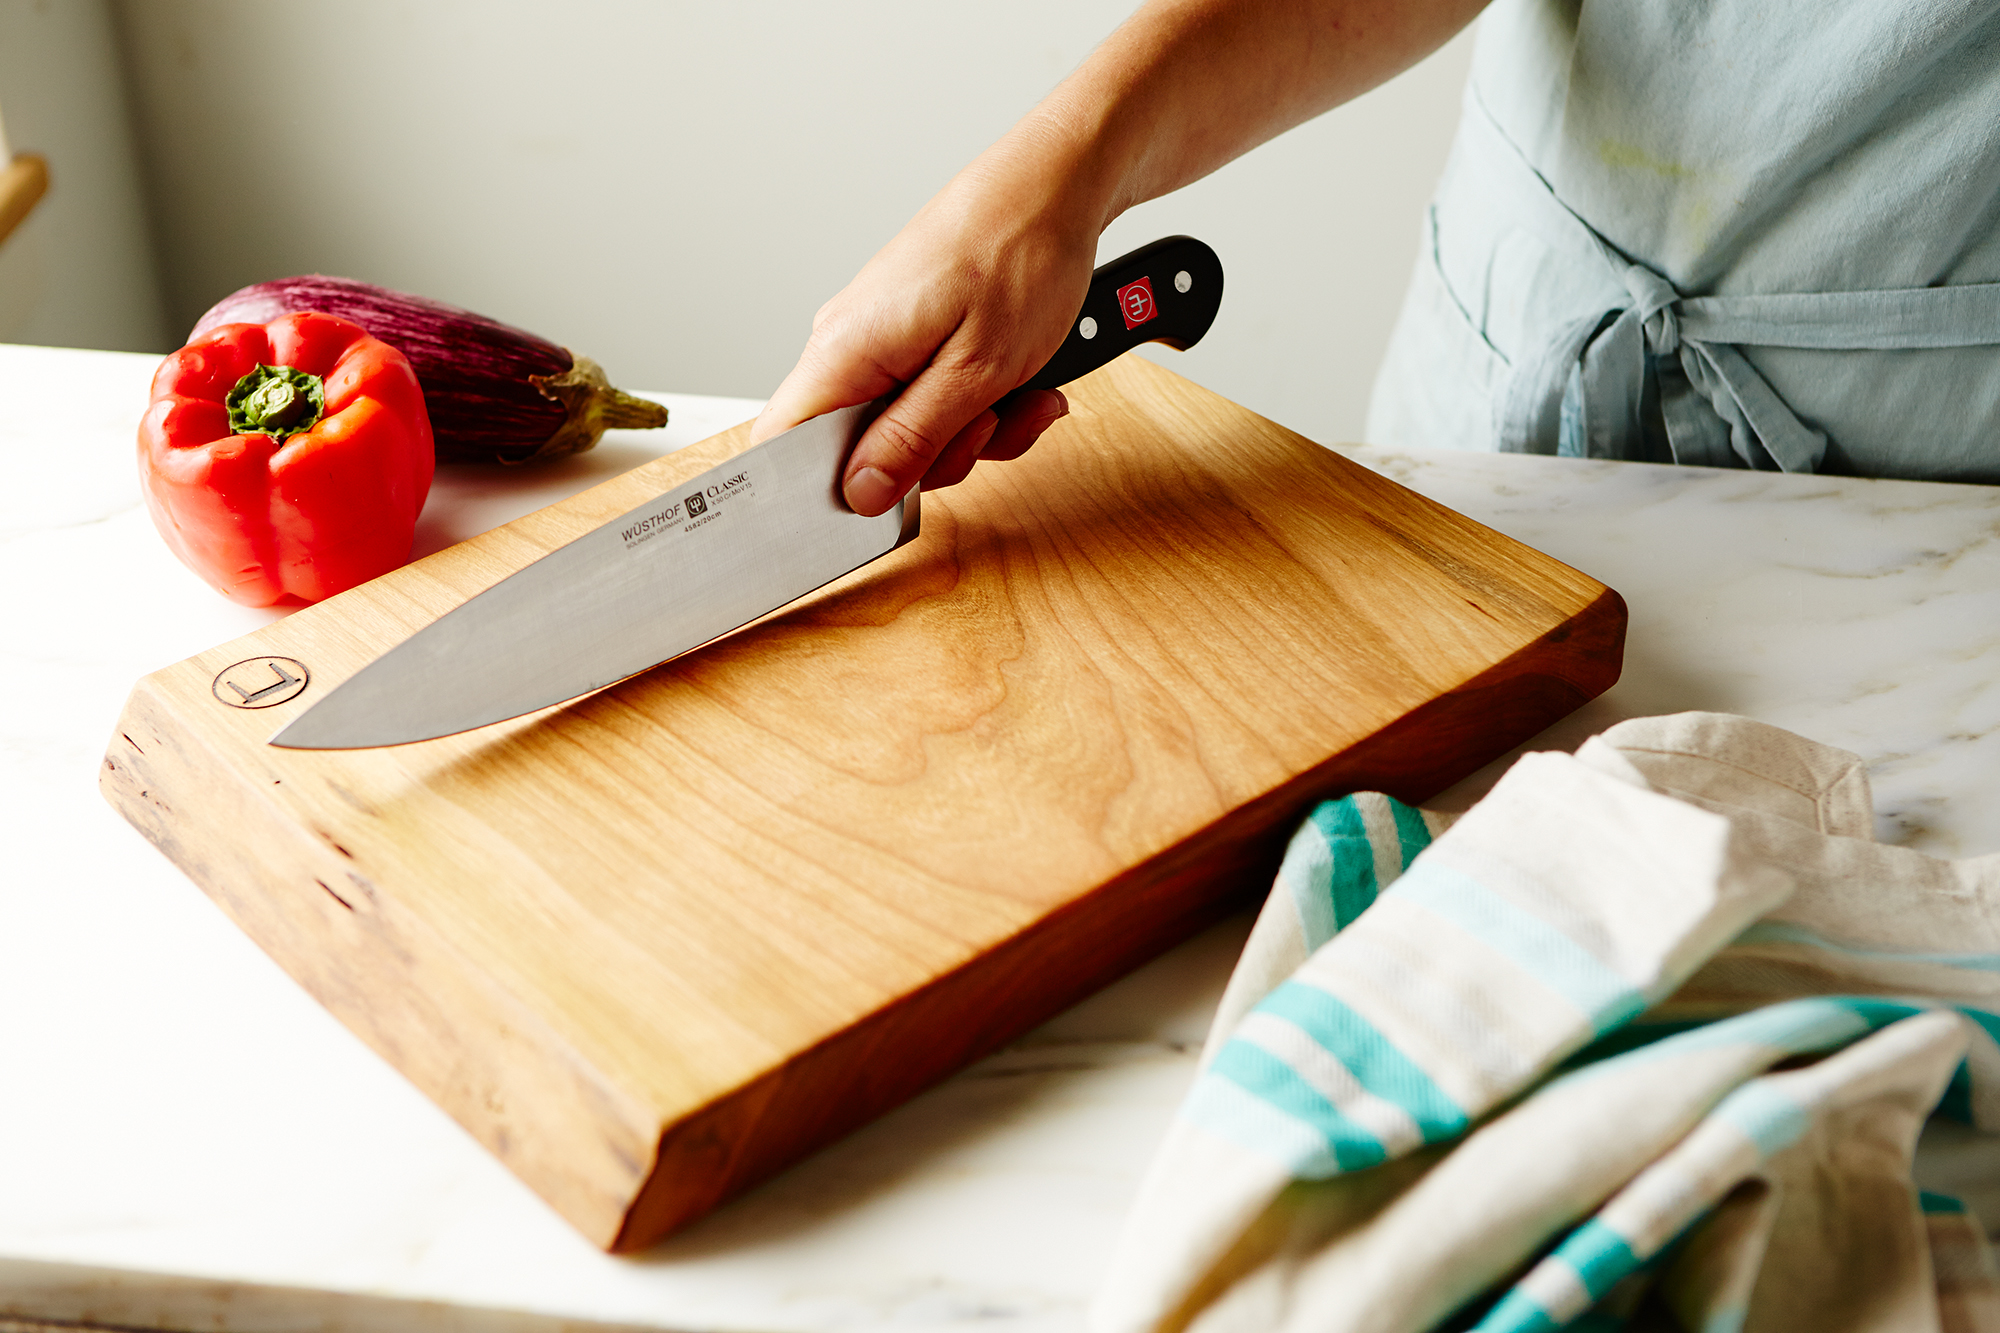 a woman's hand holding a kitchen knife